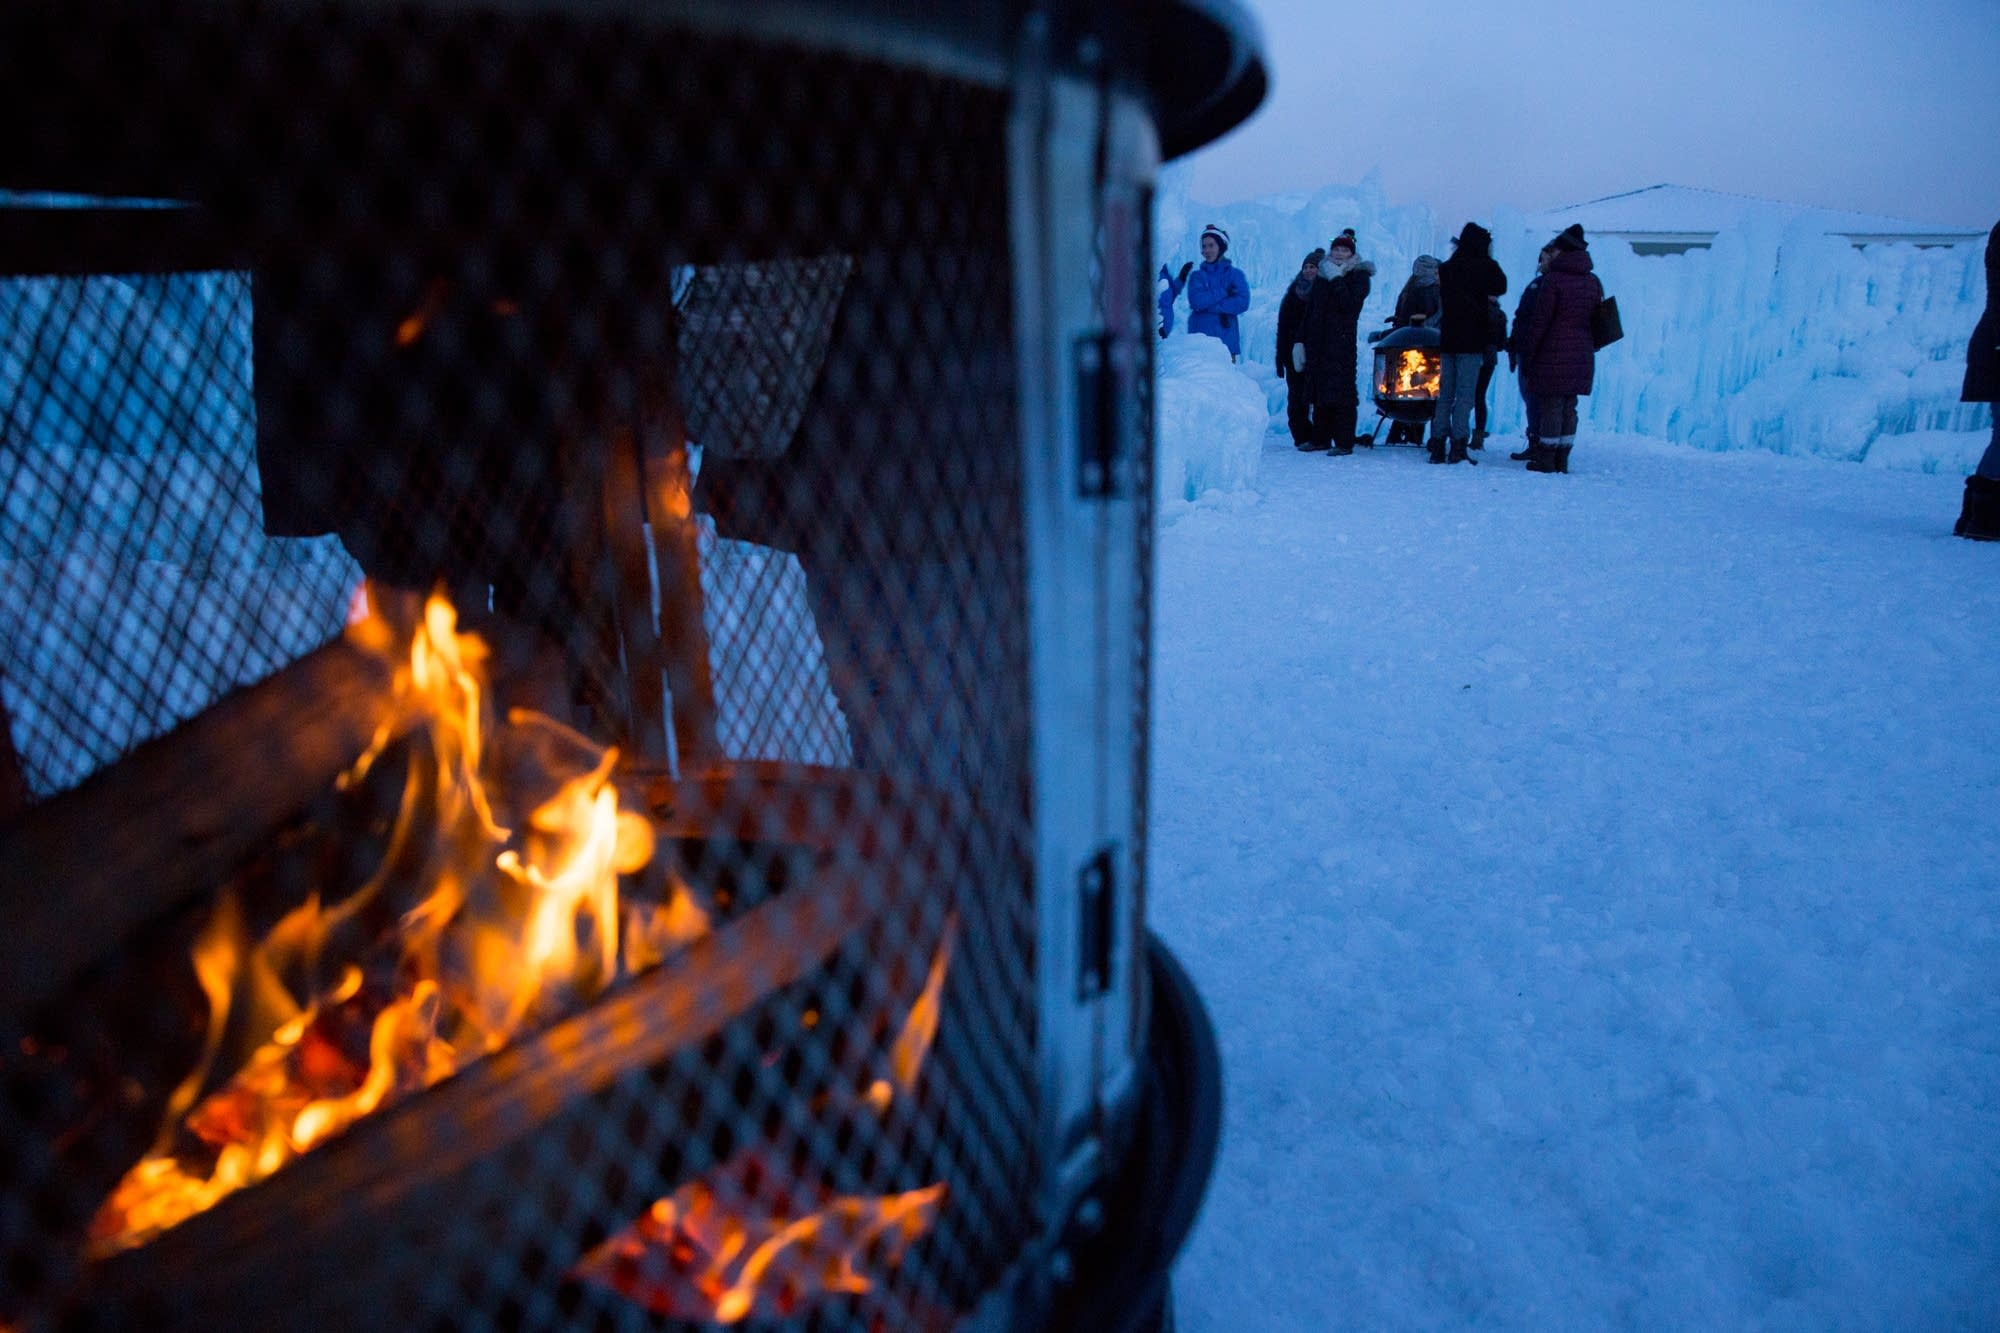 Two fire pits help keep visitors warm.